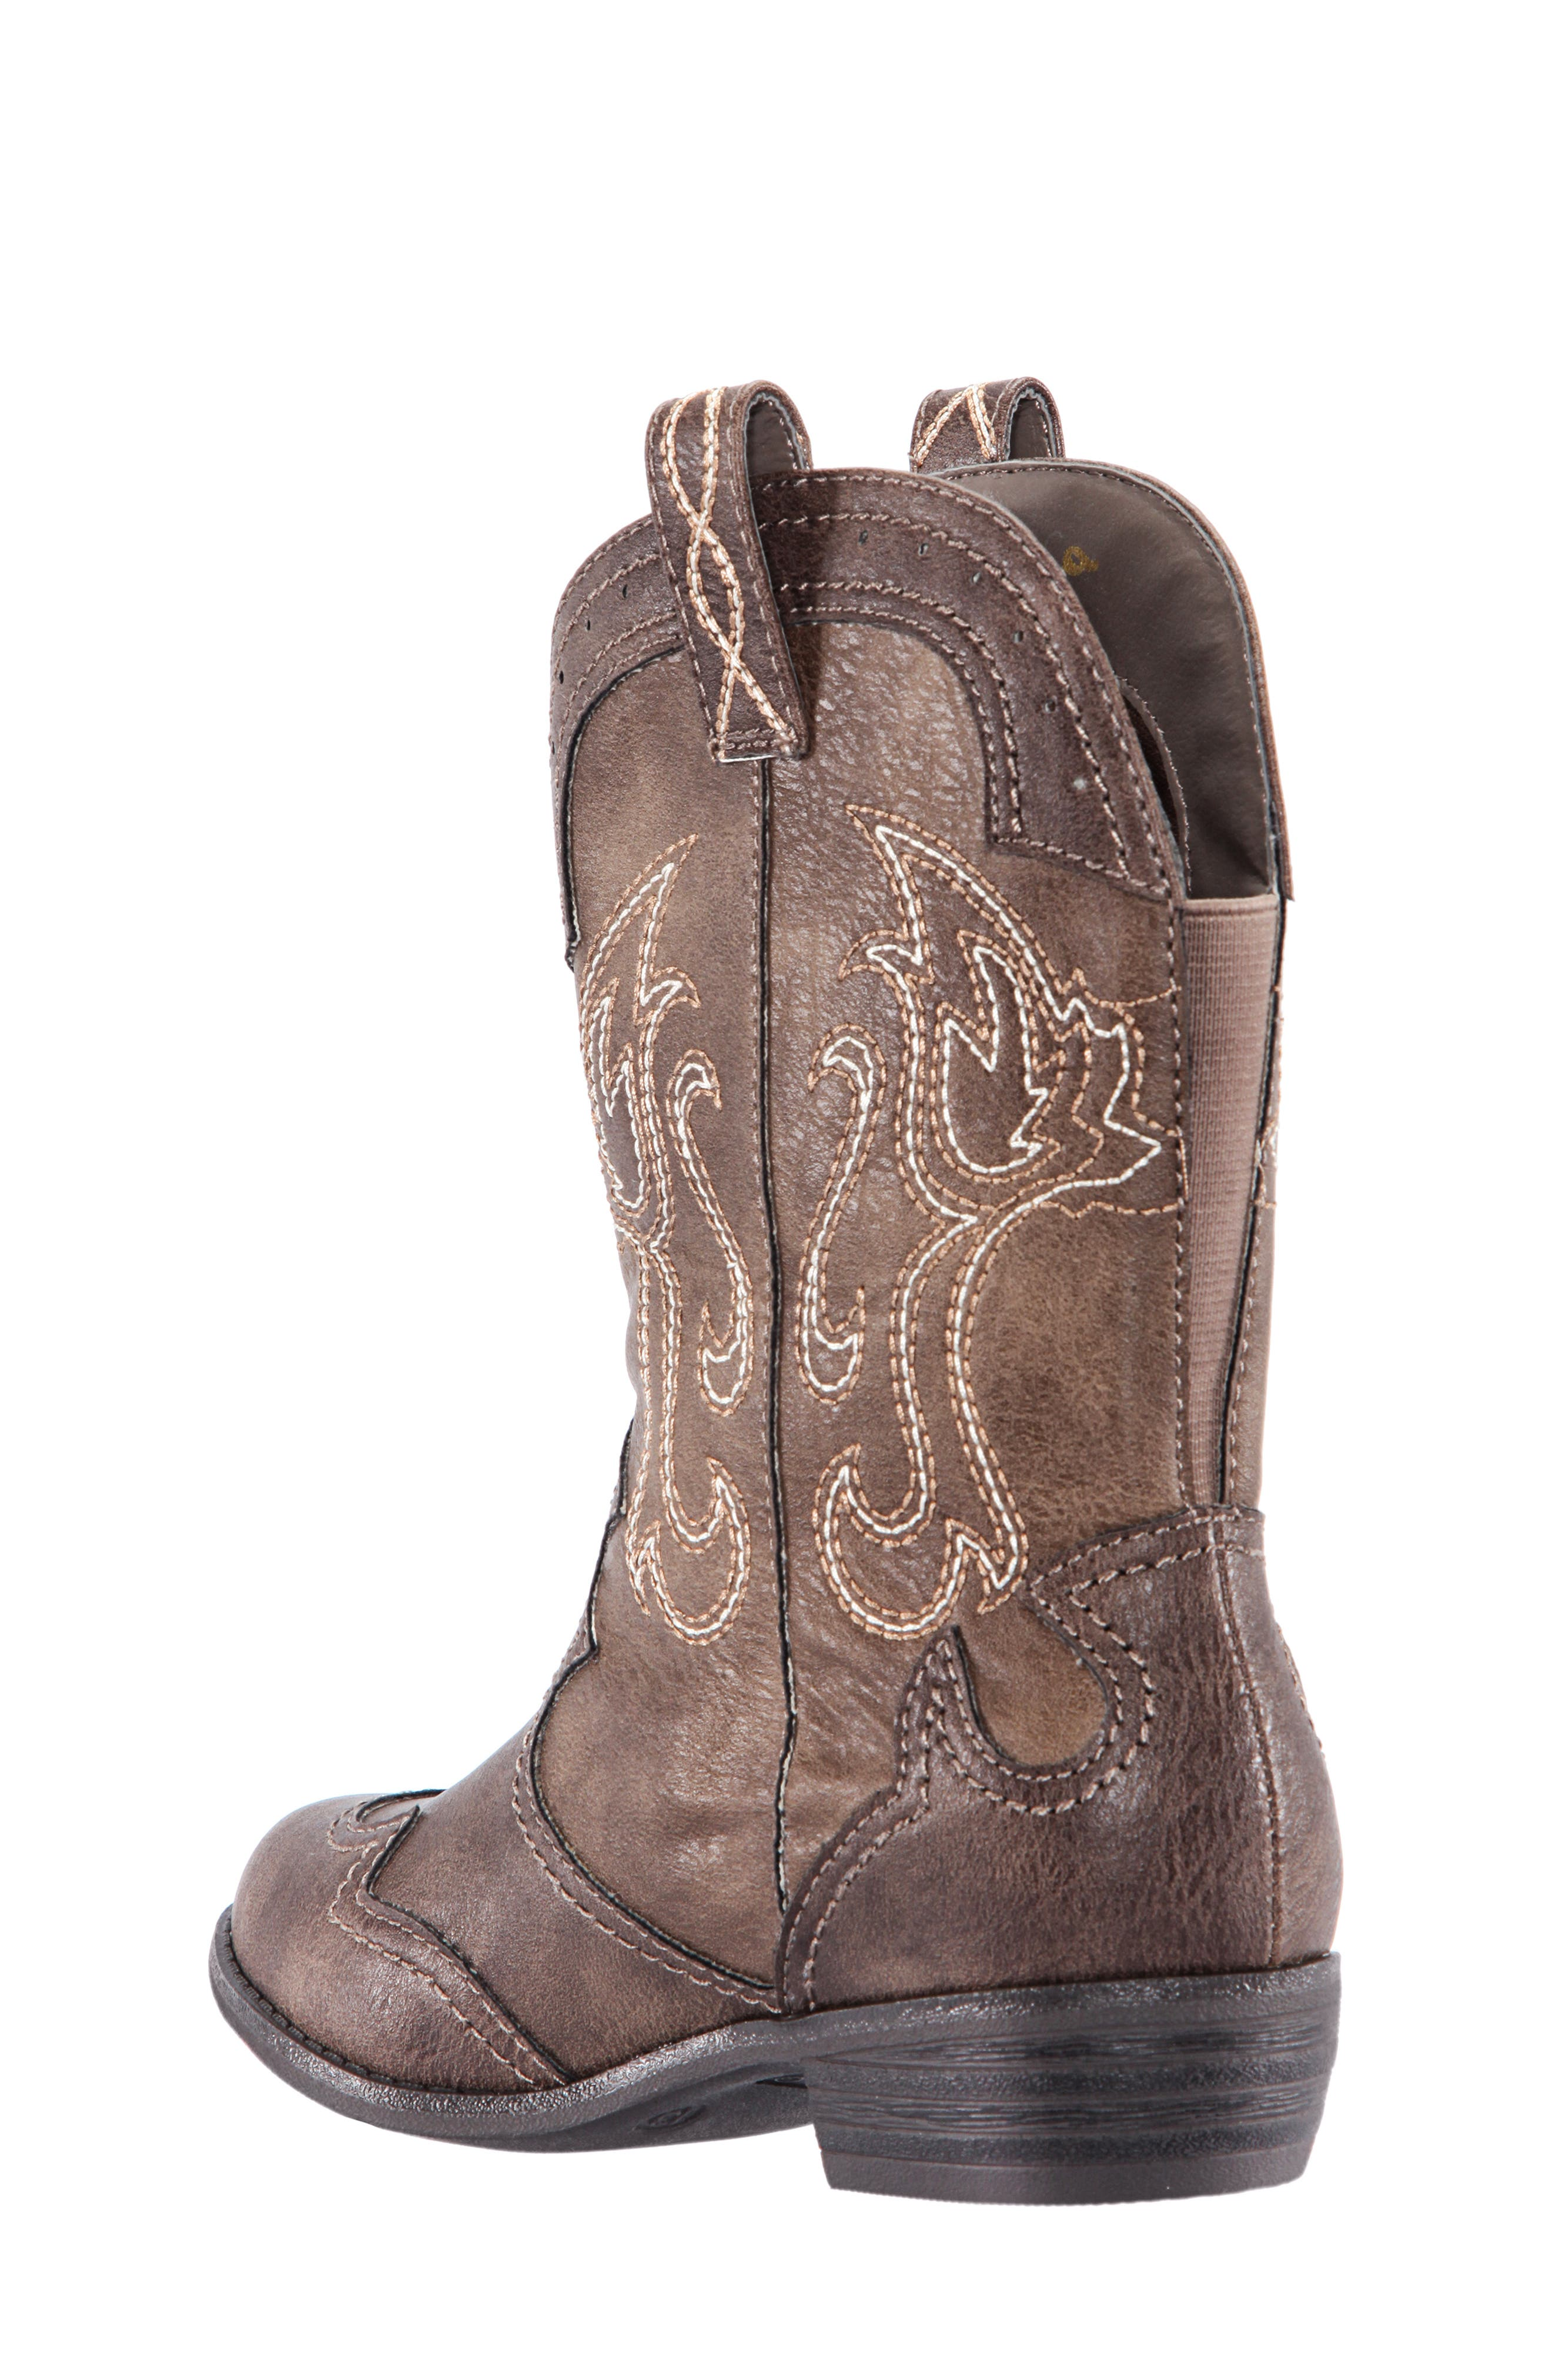 Beti Western Boot,                             Alternate thumbnail 2, color,                             207